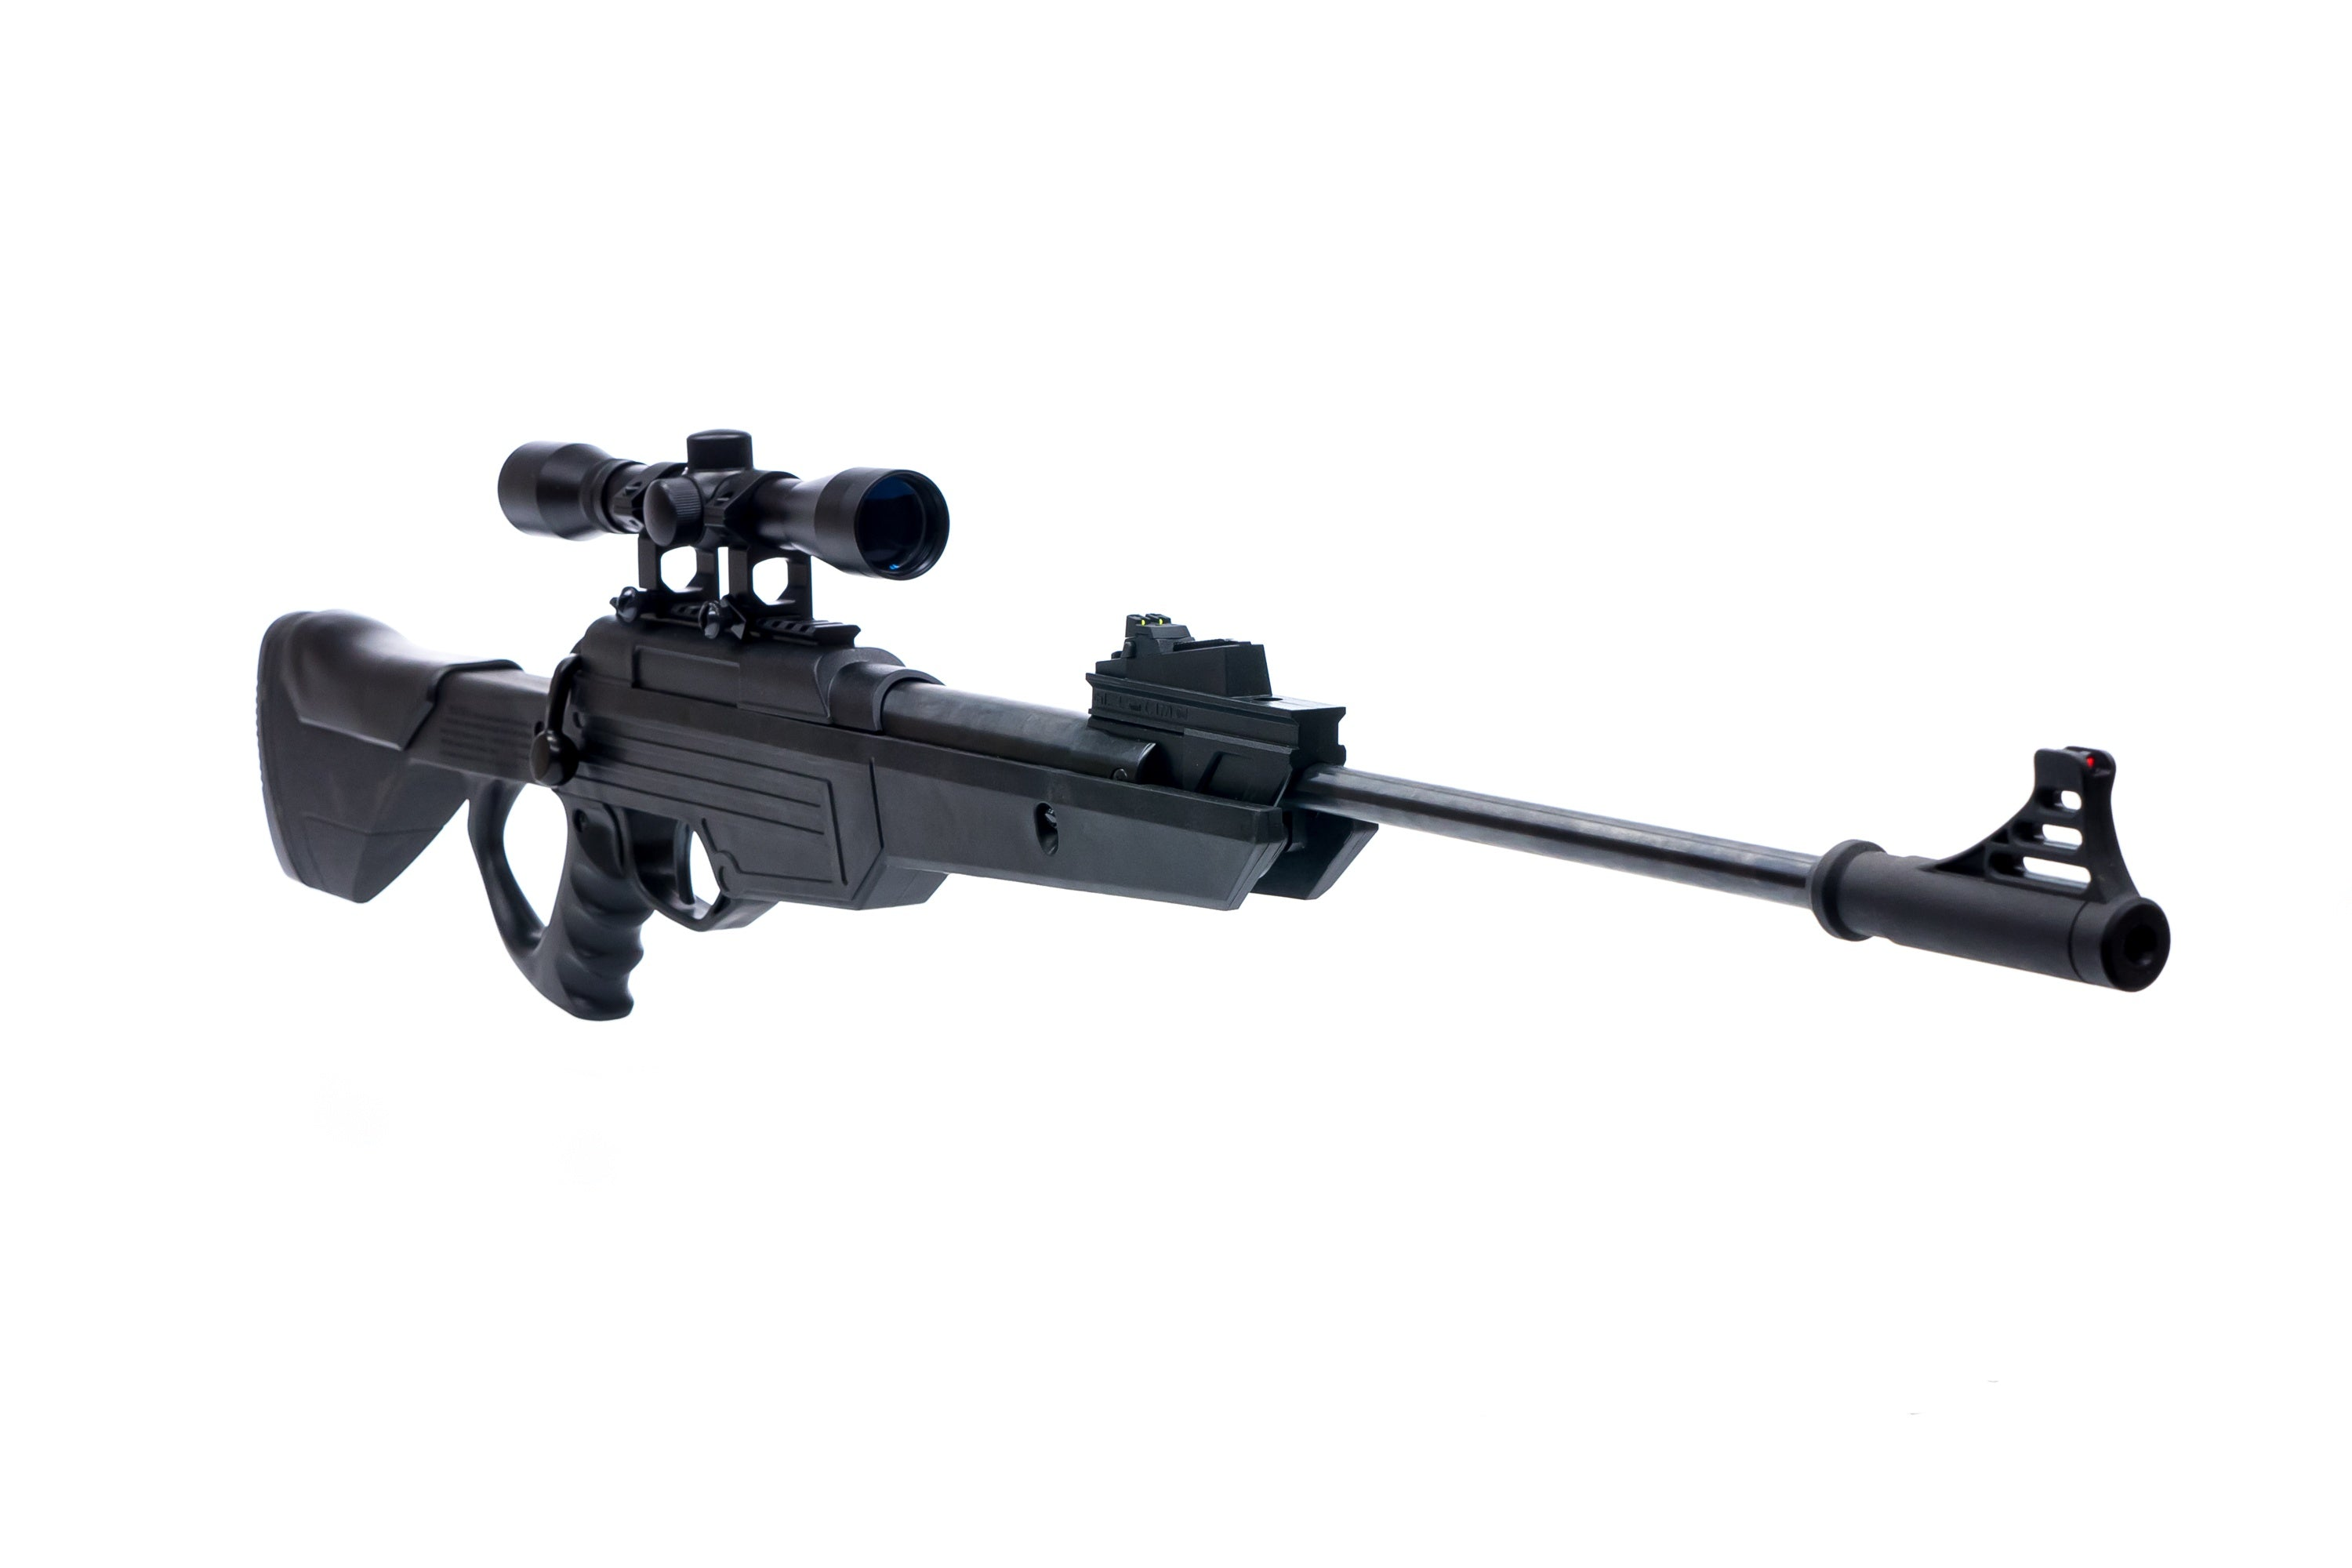 TPR 1200 Hunting Air Rifle -  177 Airgun - Pellet Gun with Scope Included